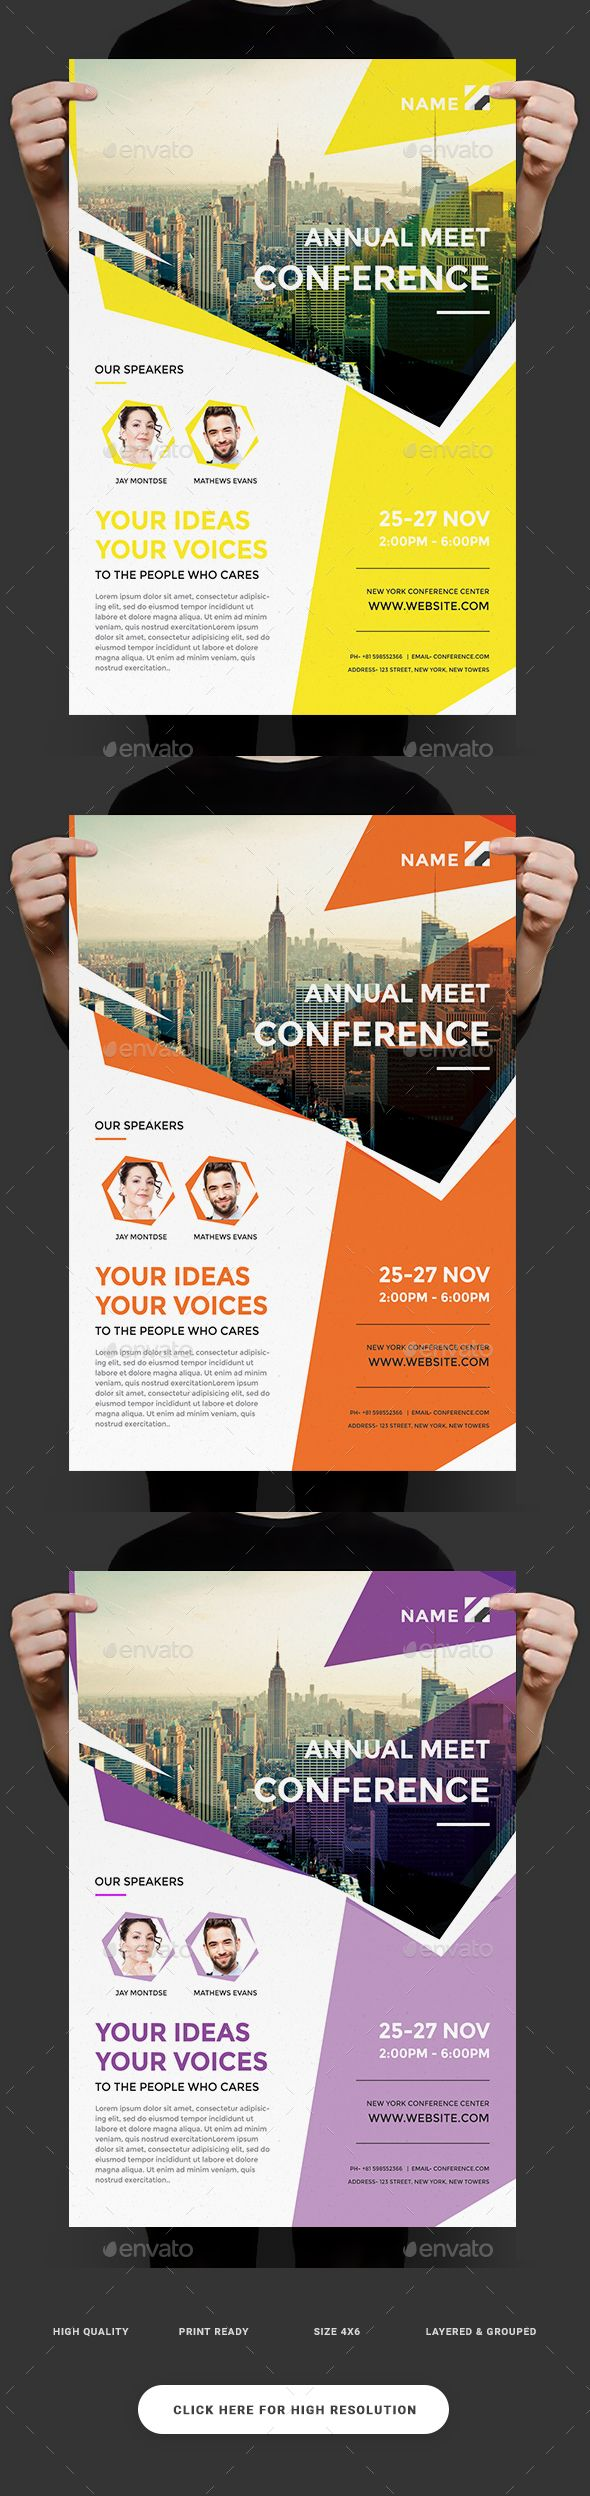 Event Summit Conference Flyer — Photoshop PSD #entrepreneur #participant • Available here → https://graphicriver.net/item/event-summit-conference-flyer/18414054?ref=pxcr